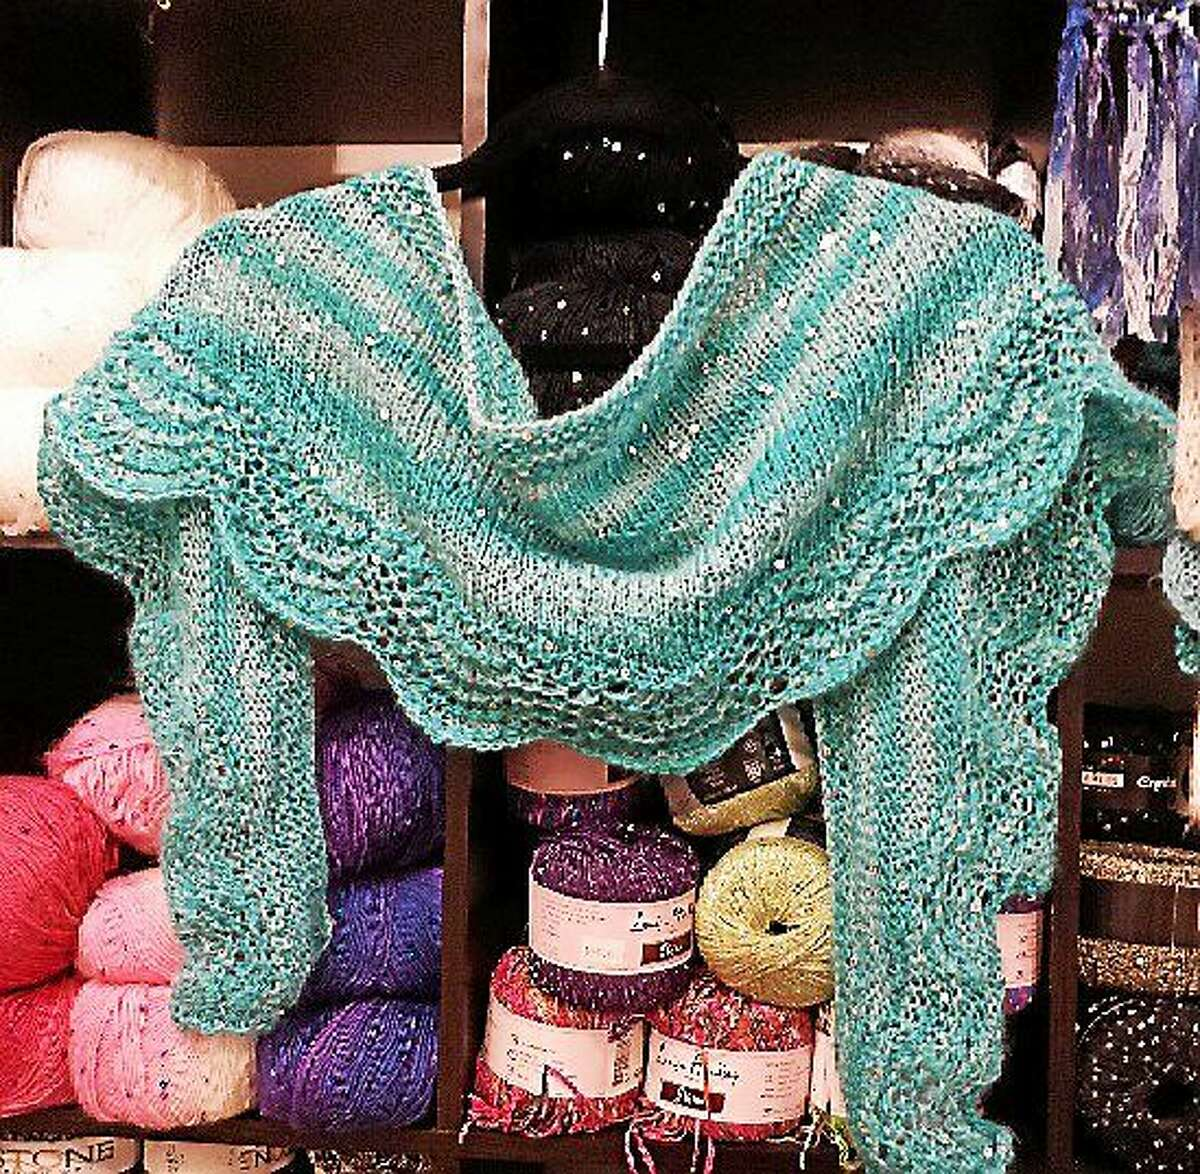 Photo courtesy of Ginger Balch A shawlette, customized by the creator, is an irresistible and simple project.